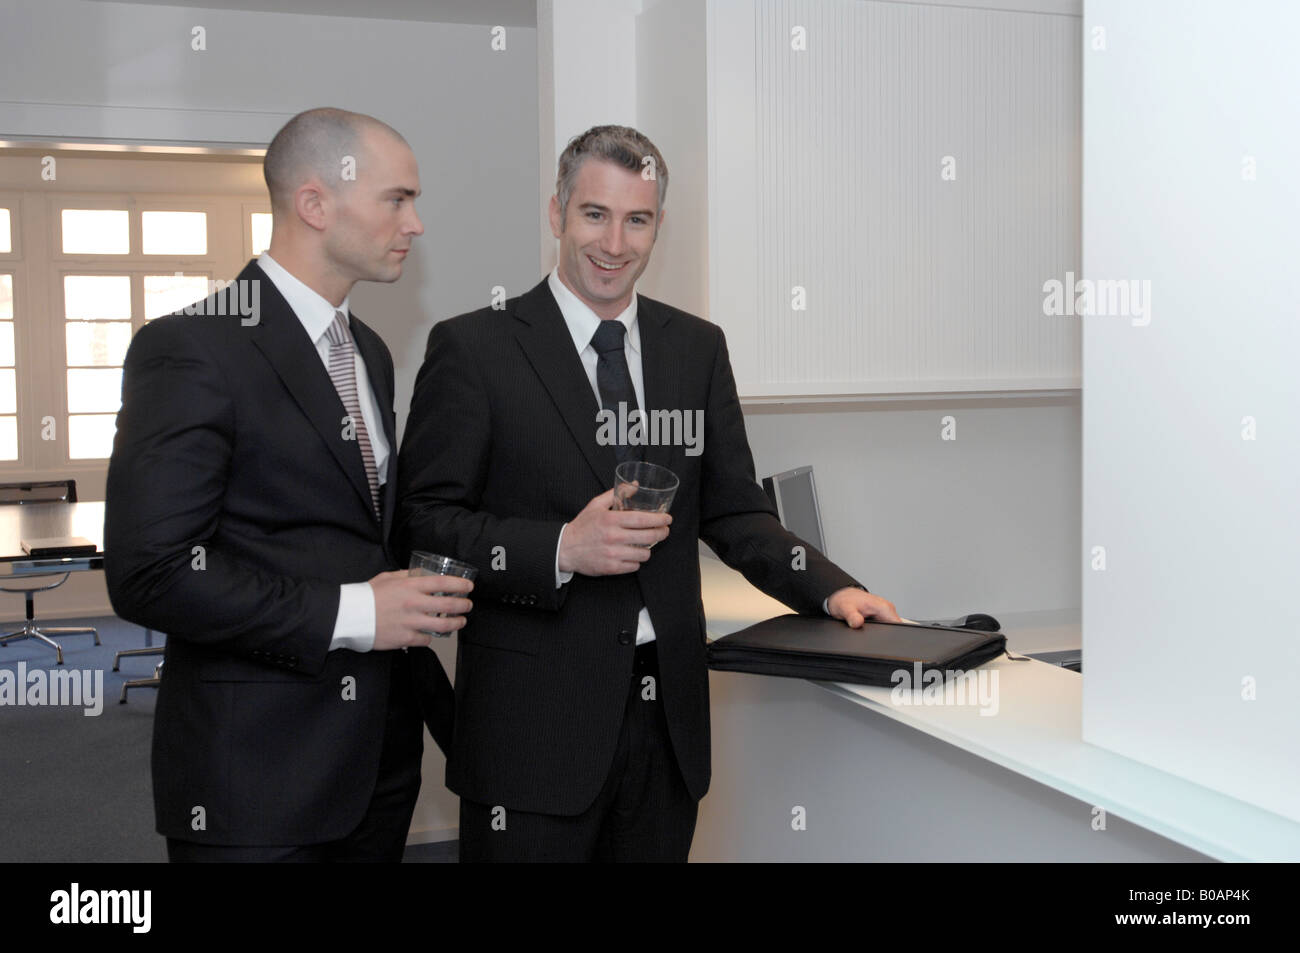 businessmen at a reception desk - Stock Image